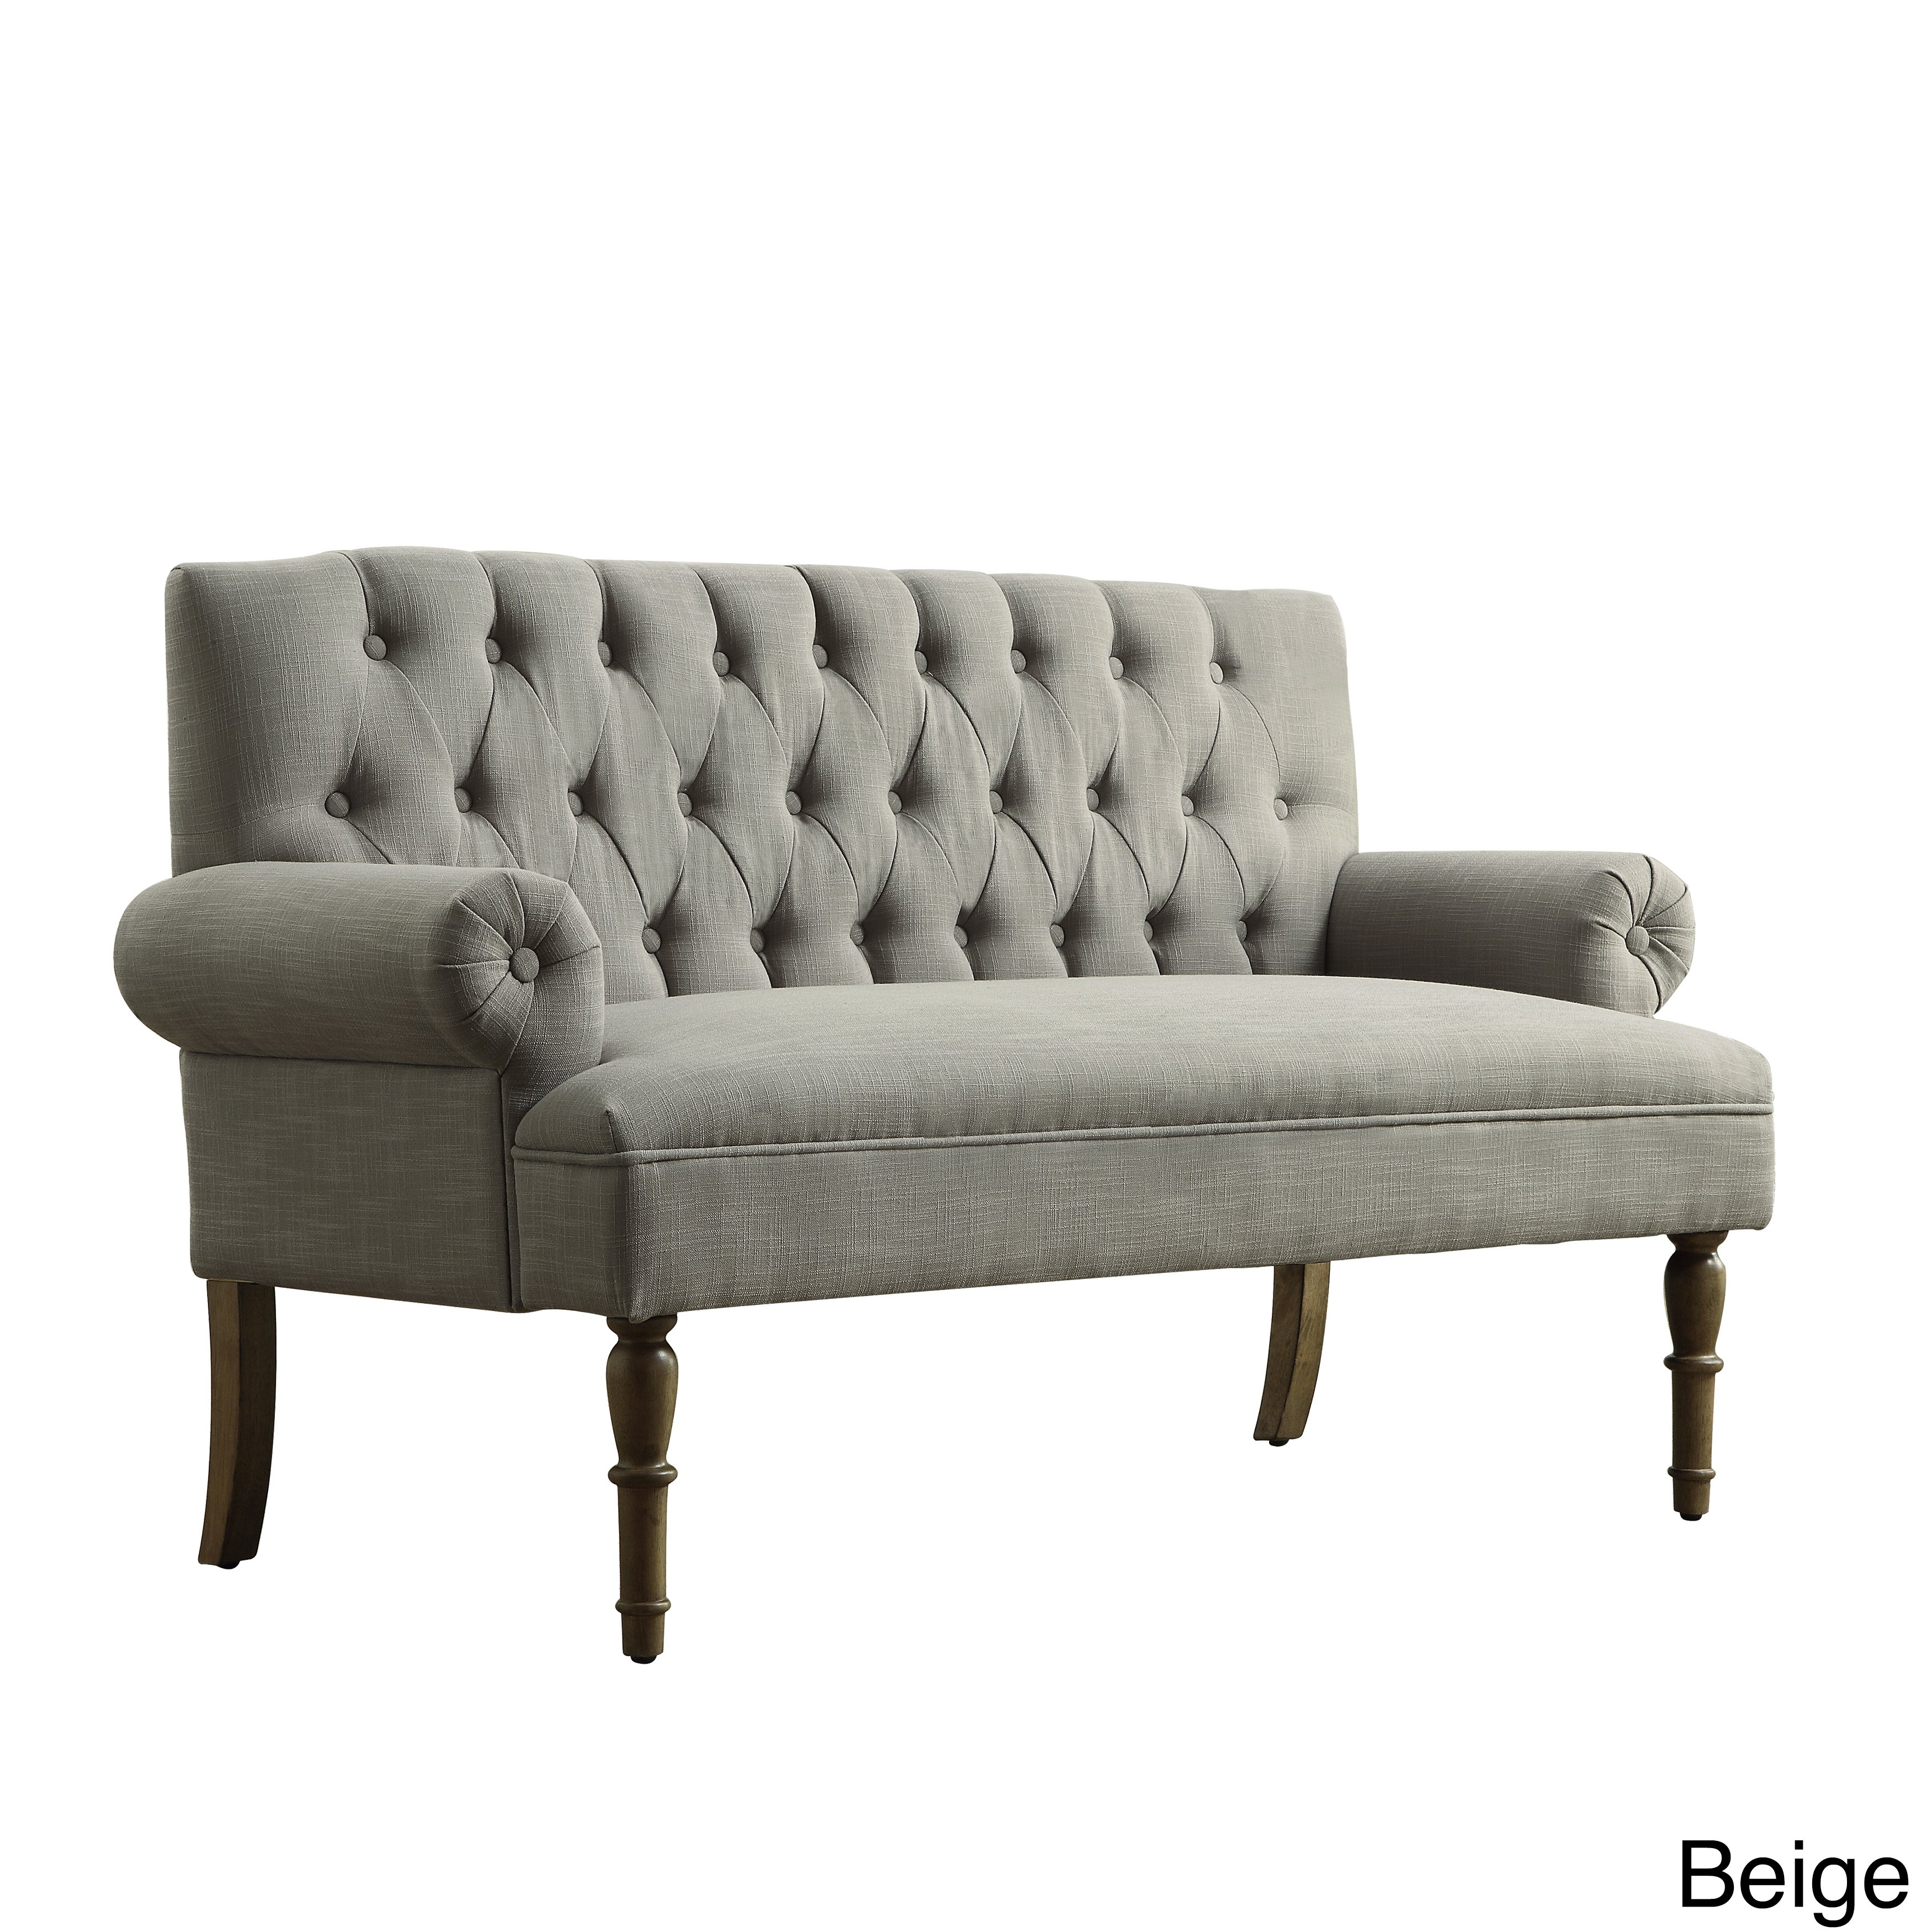 Shop Upholstered Settee Loveseat with Tufting Back - Free Shipping Today -  Overstock - 11542619